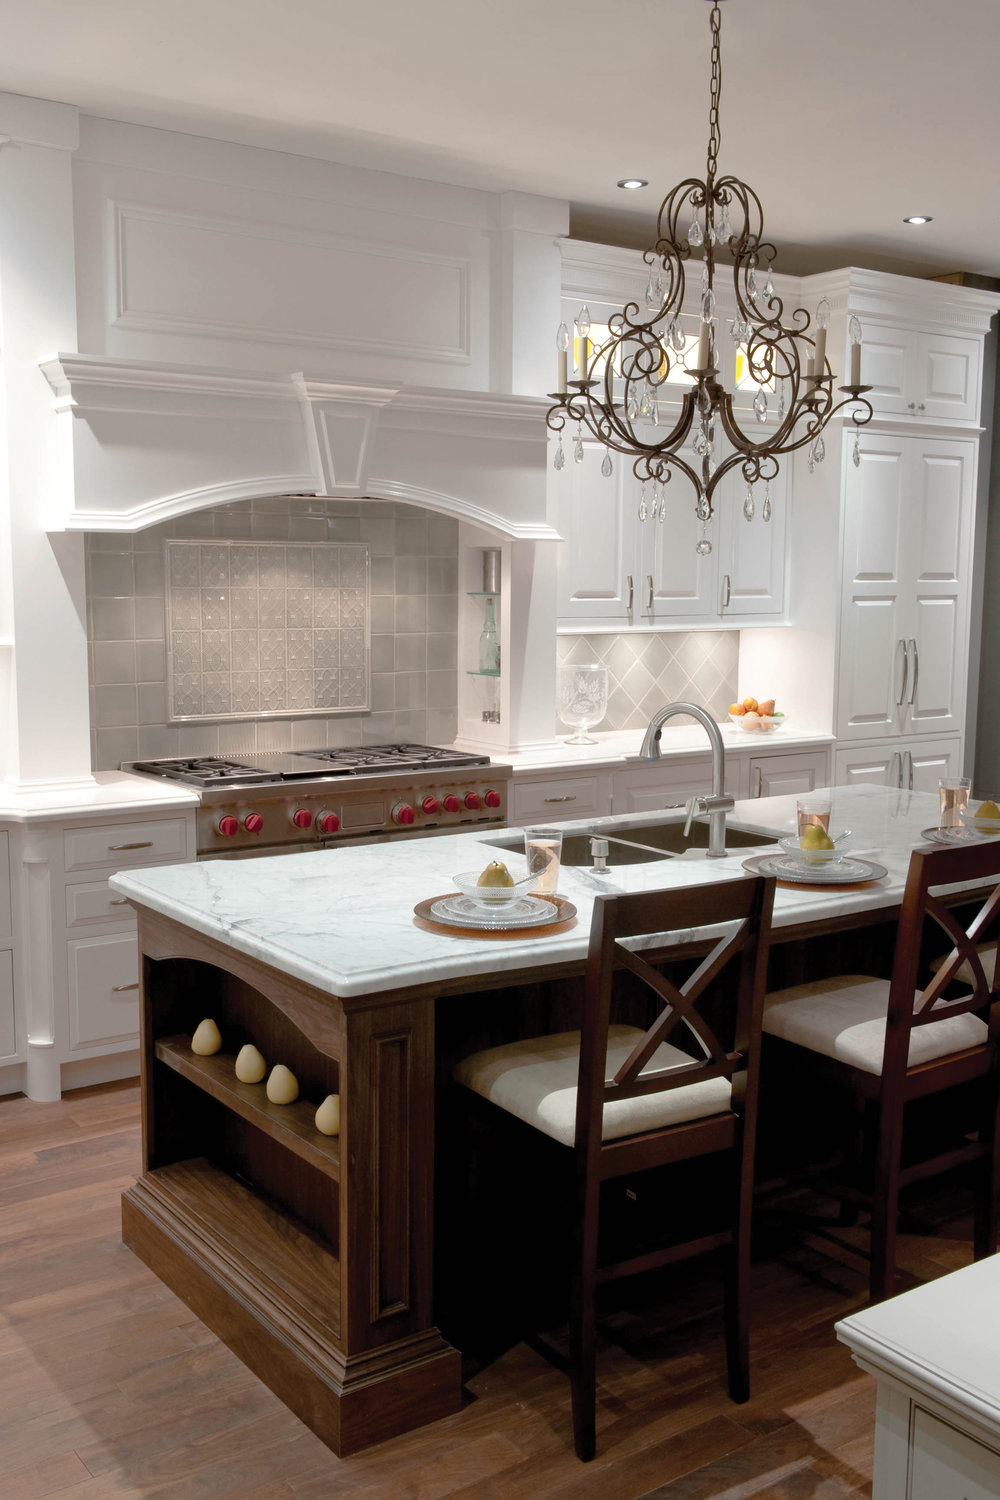 Cabinetry by Cabinetry design center